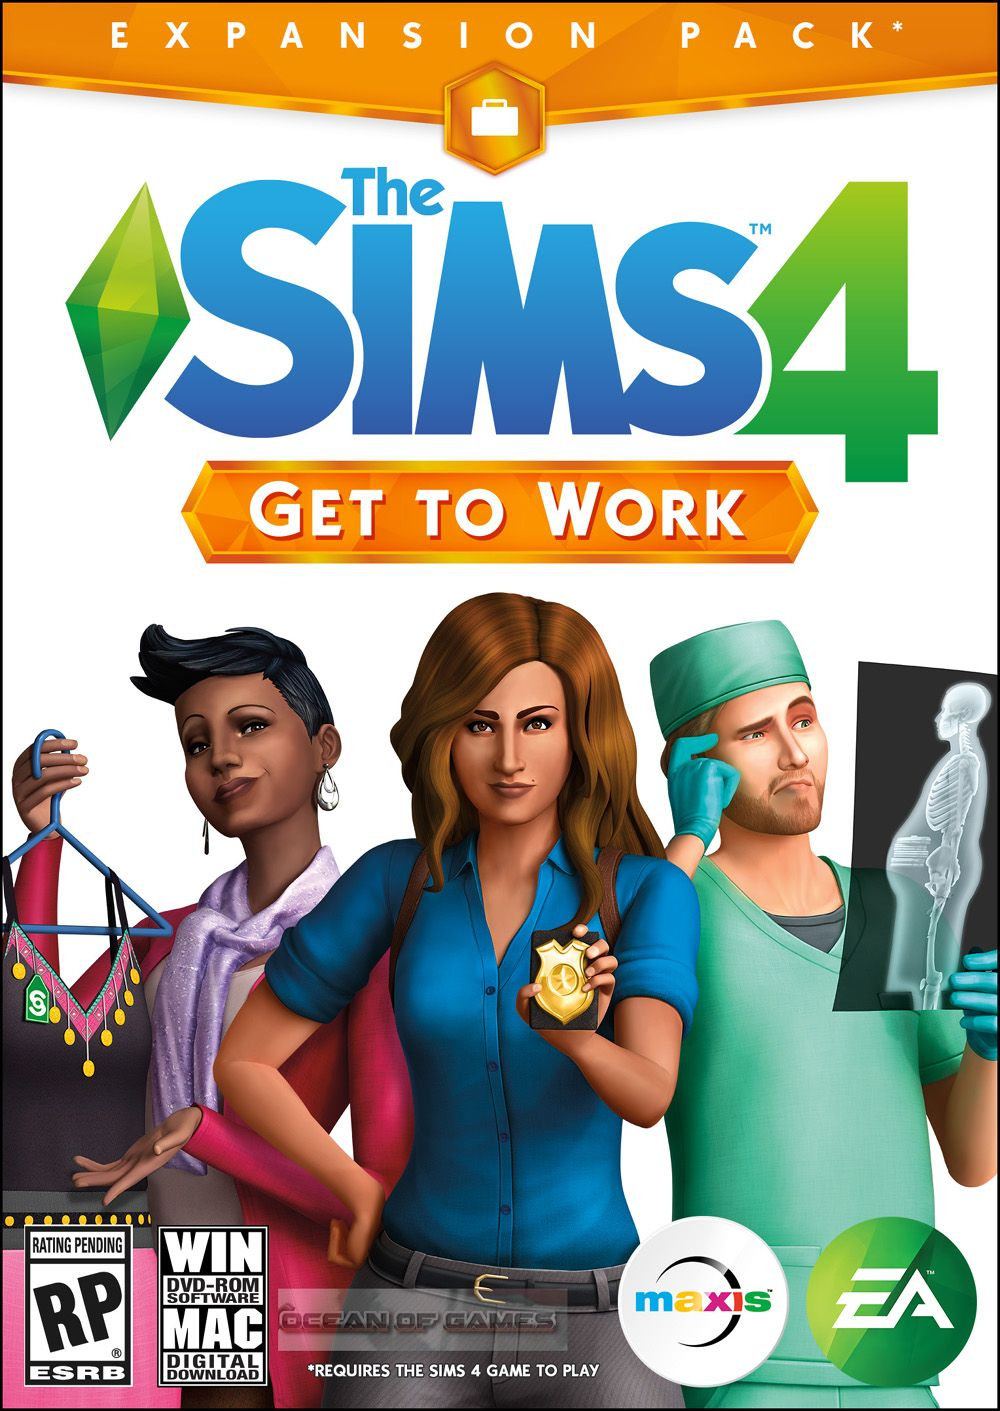 The Sims 4 Get To Work Free Download Sims 4 Expansions Sims 4 The Sims 4 Packs